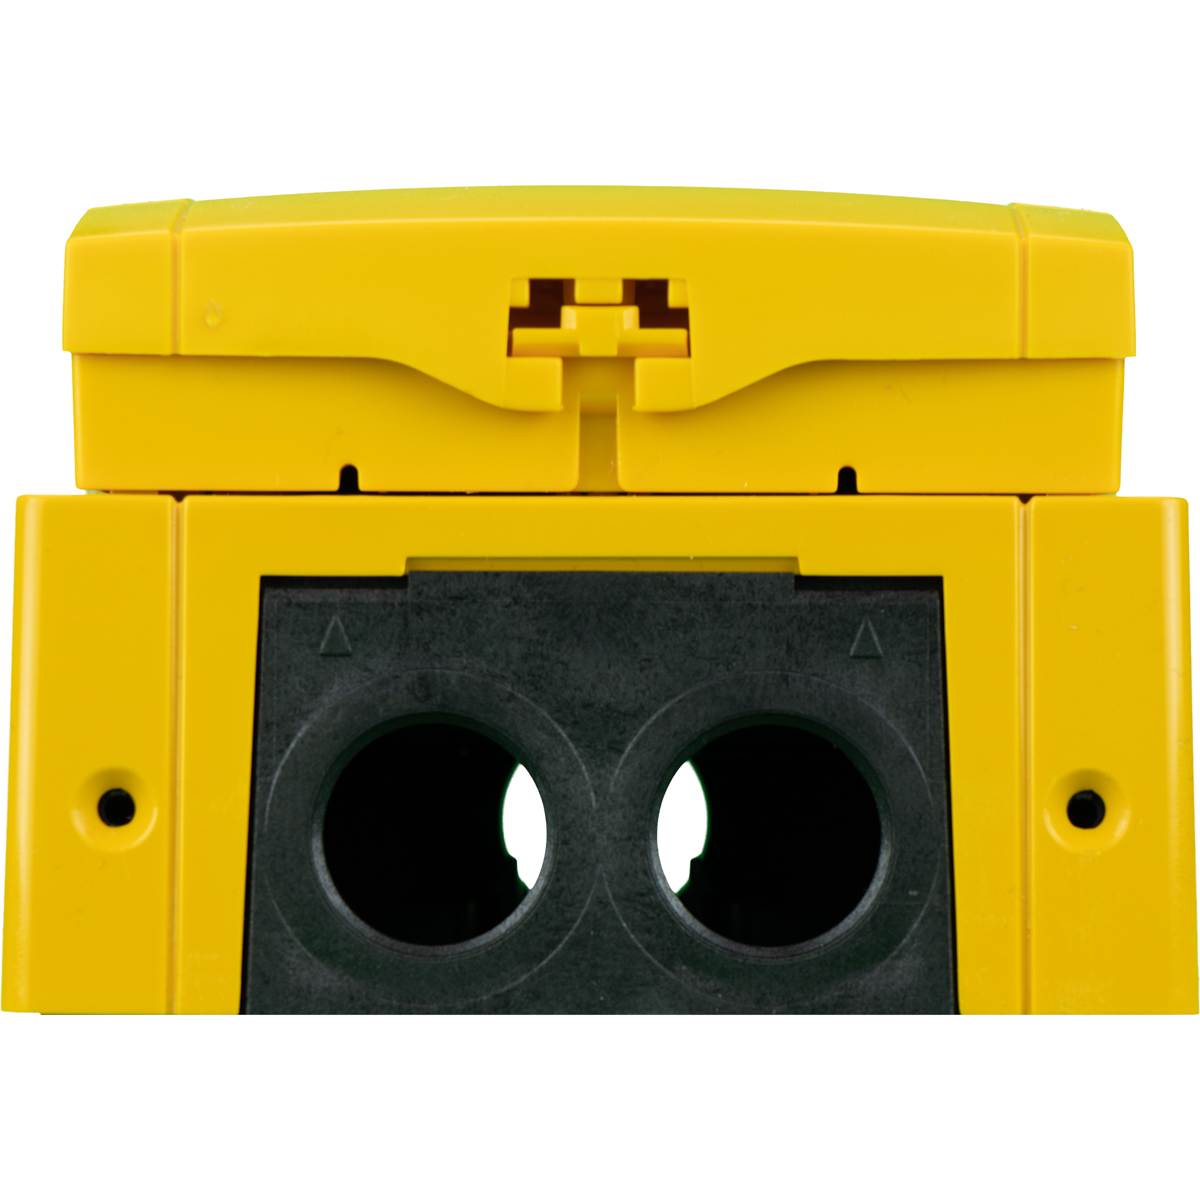 KAC manual call point yellow - IP67